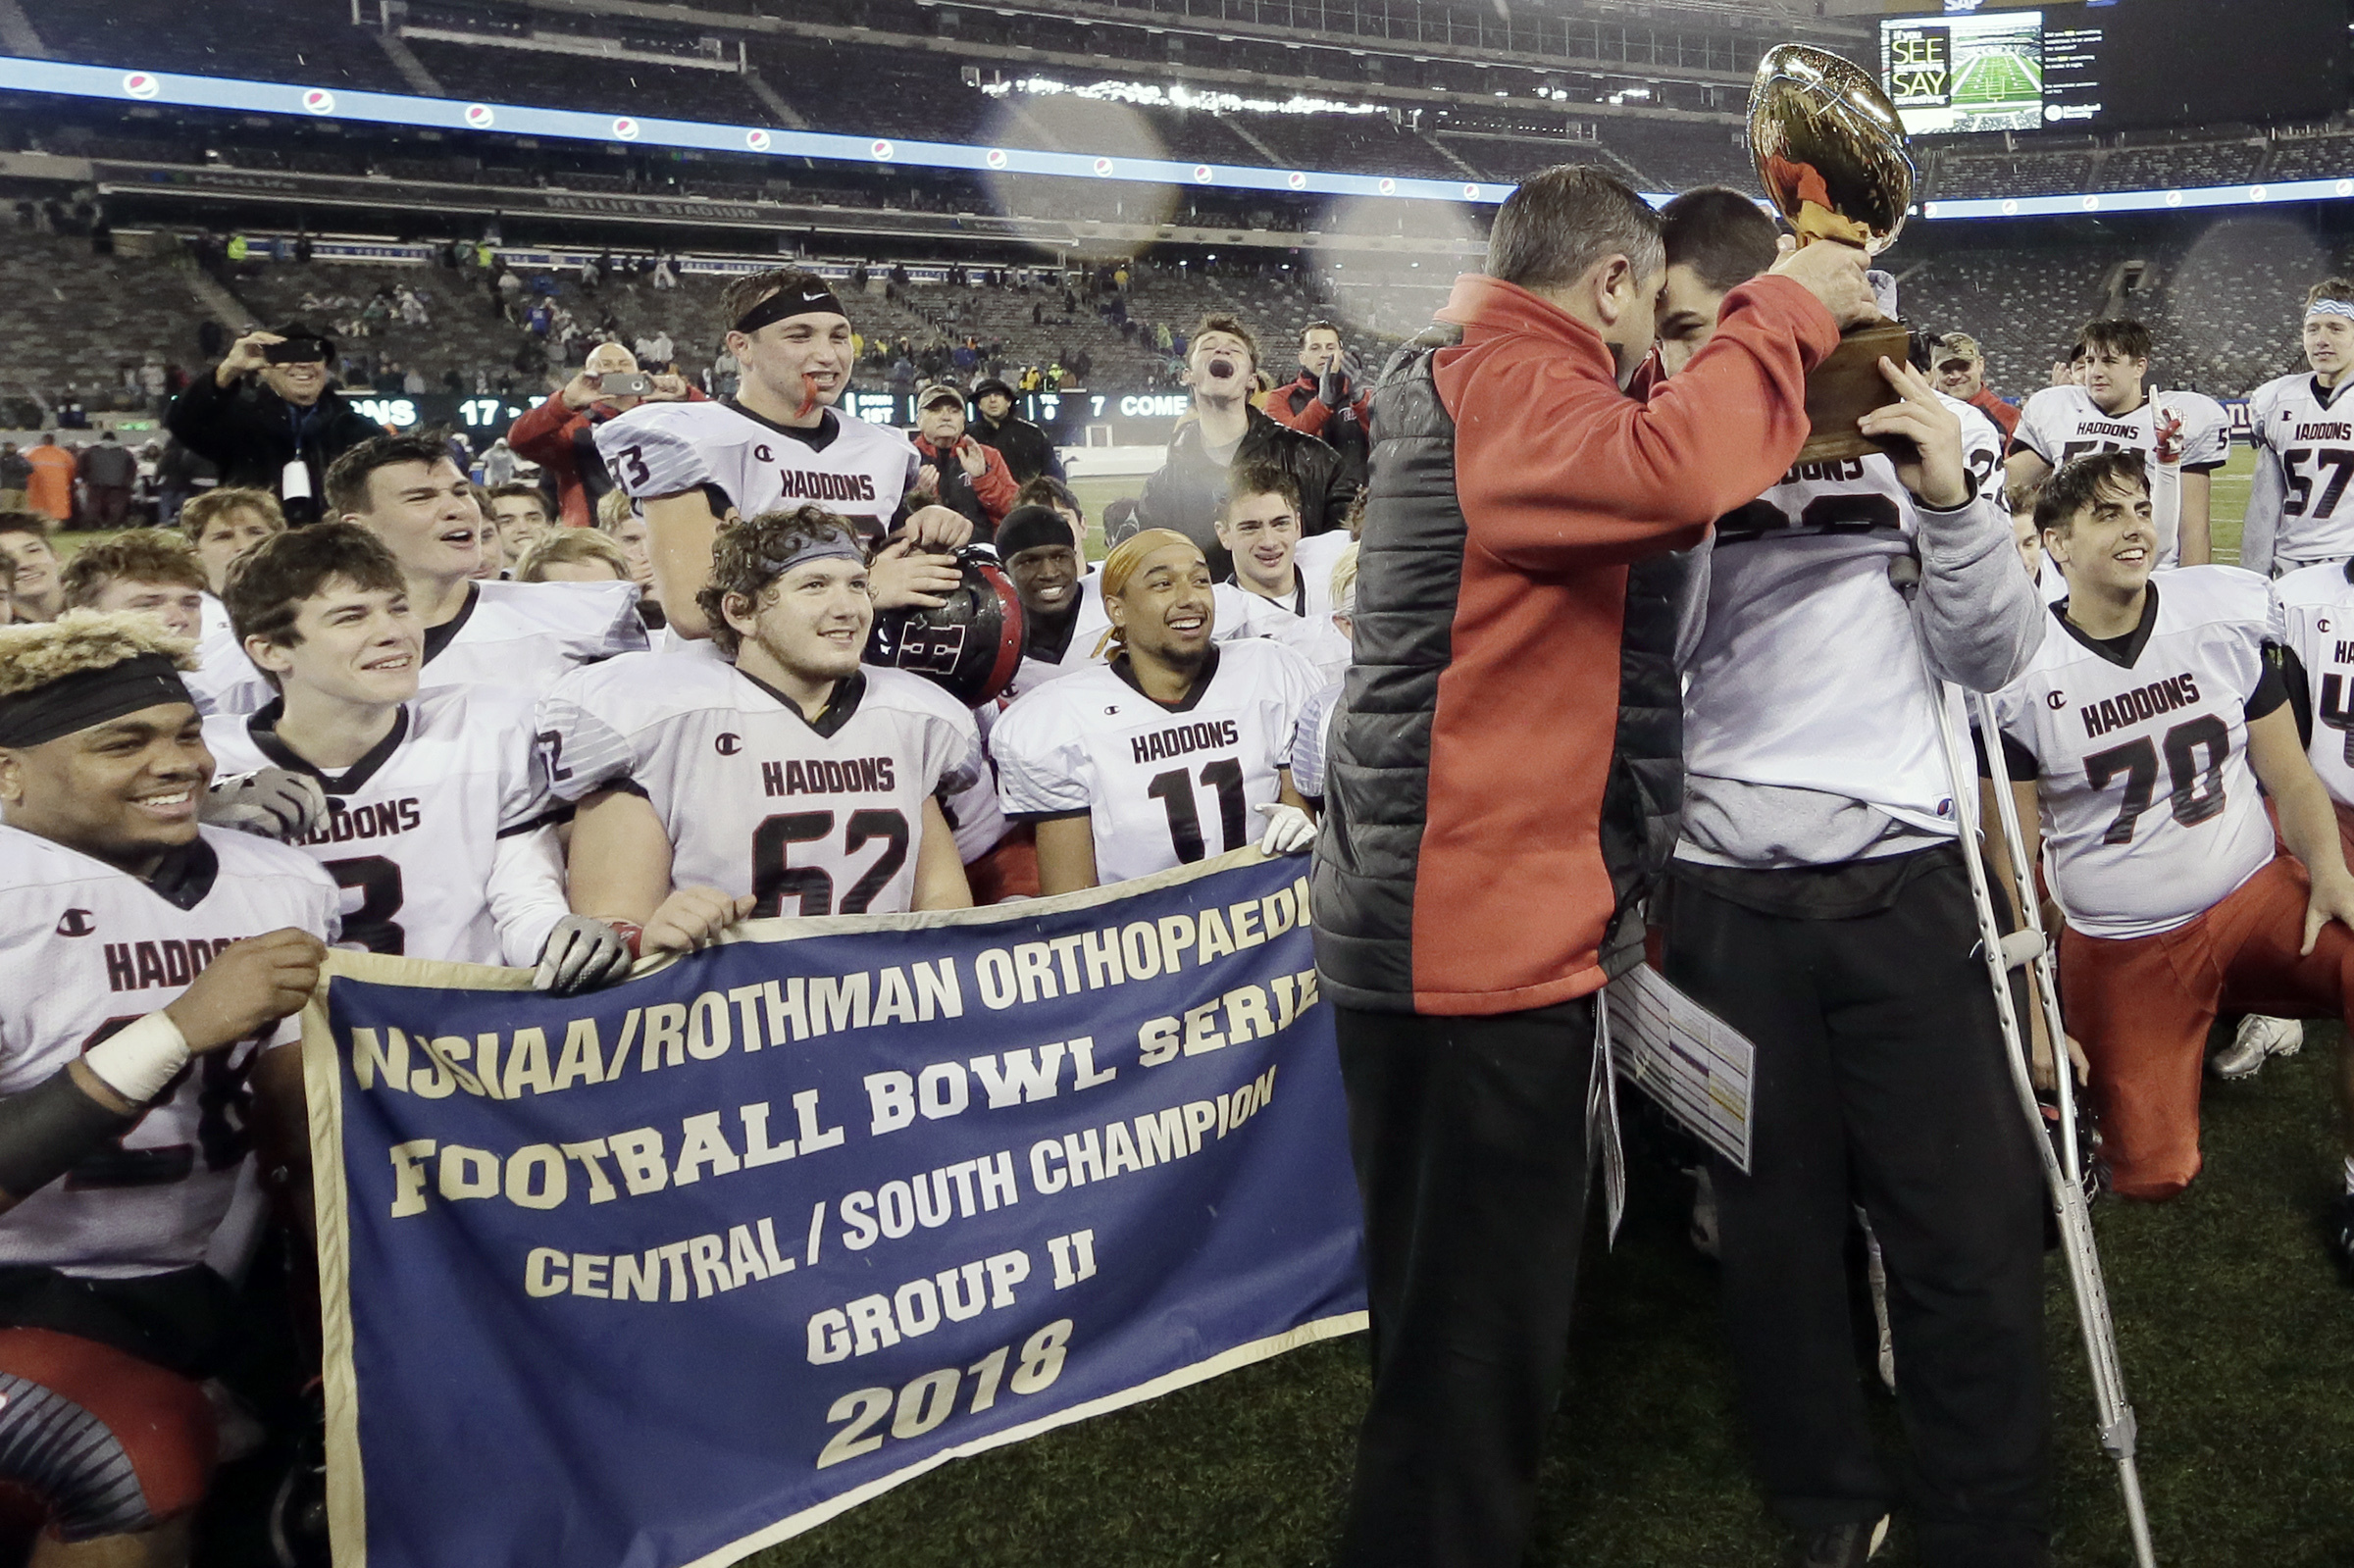 Haddonfield head coach Frank DeLano gives the trophy to injured senior Chris Brown after Group 2 South/Central Bowl Game.